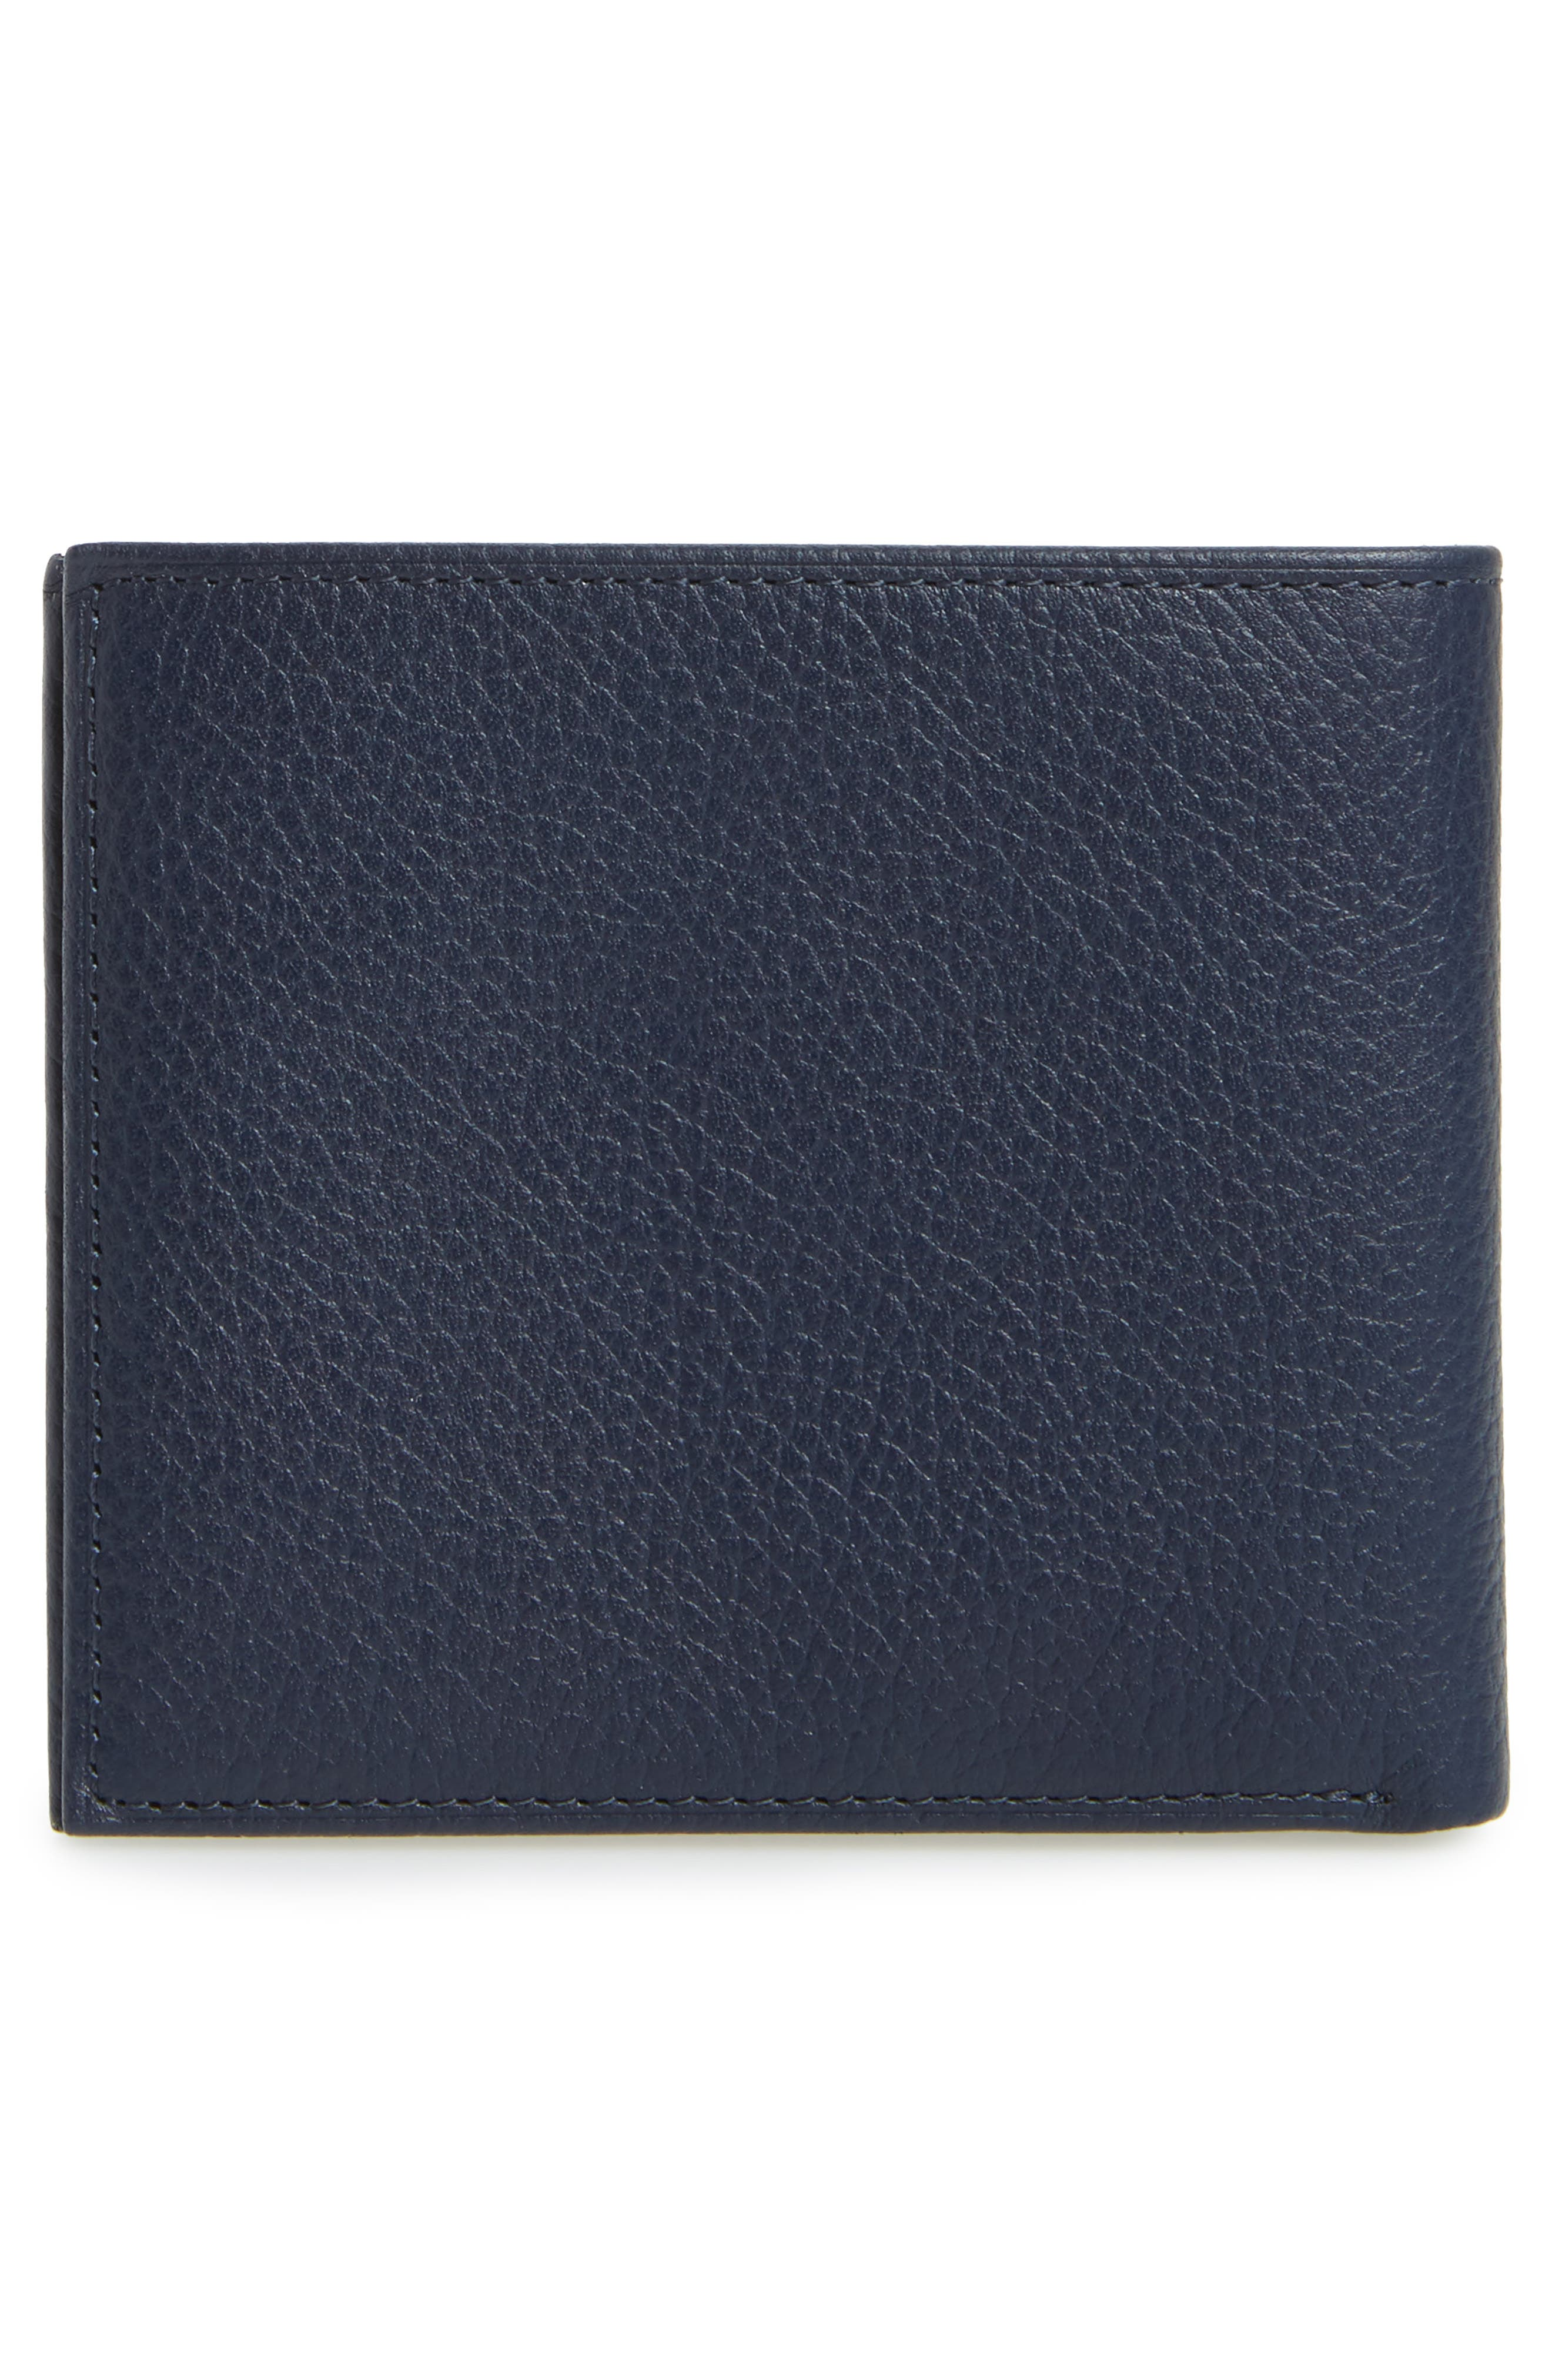 Leather Wallet,                             Alternate thumbnail 3, color,                             400